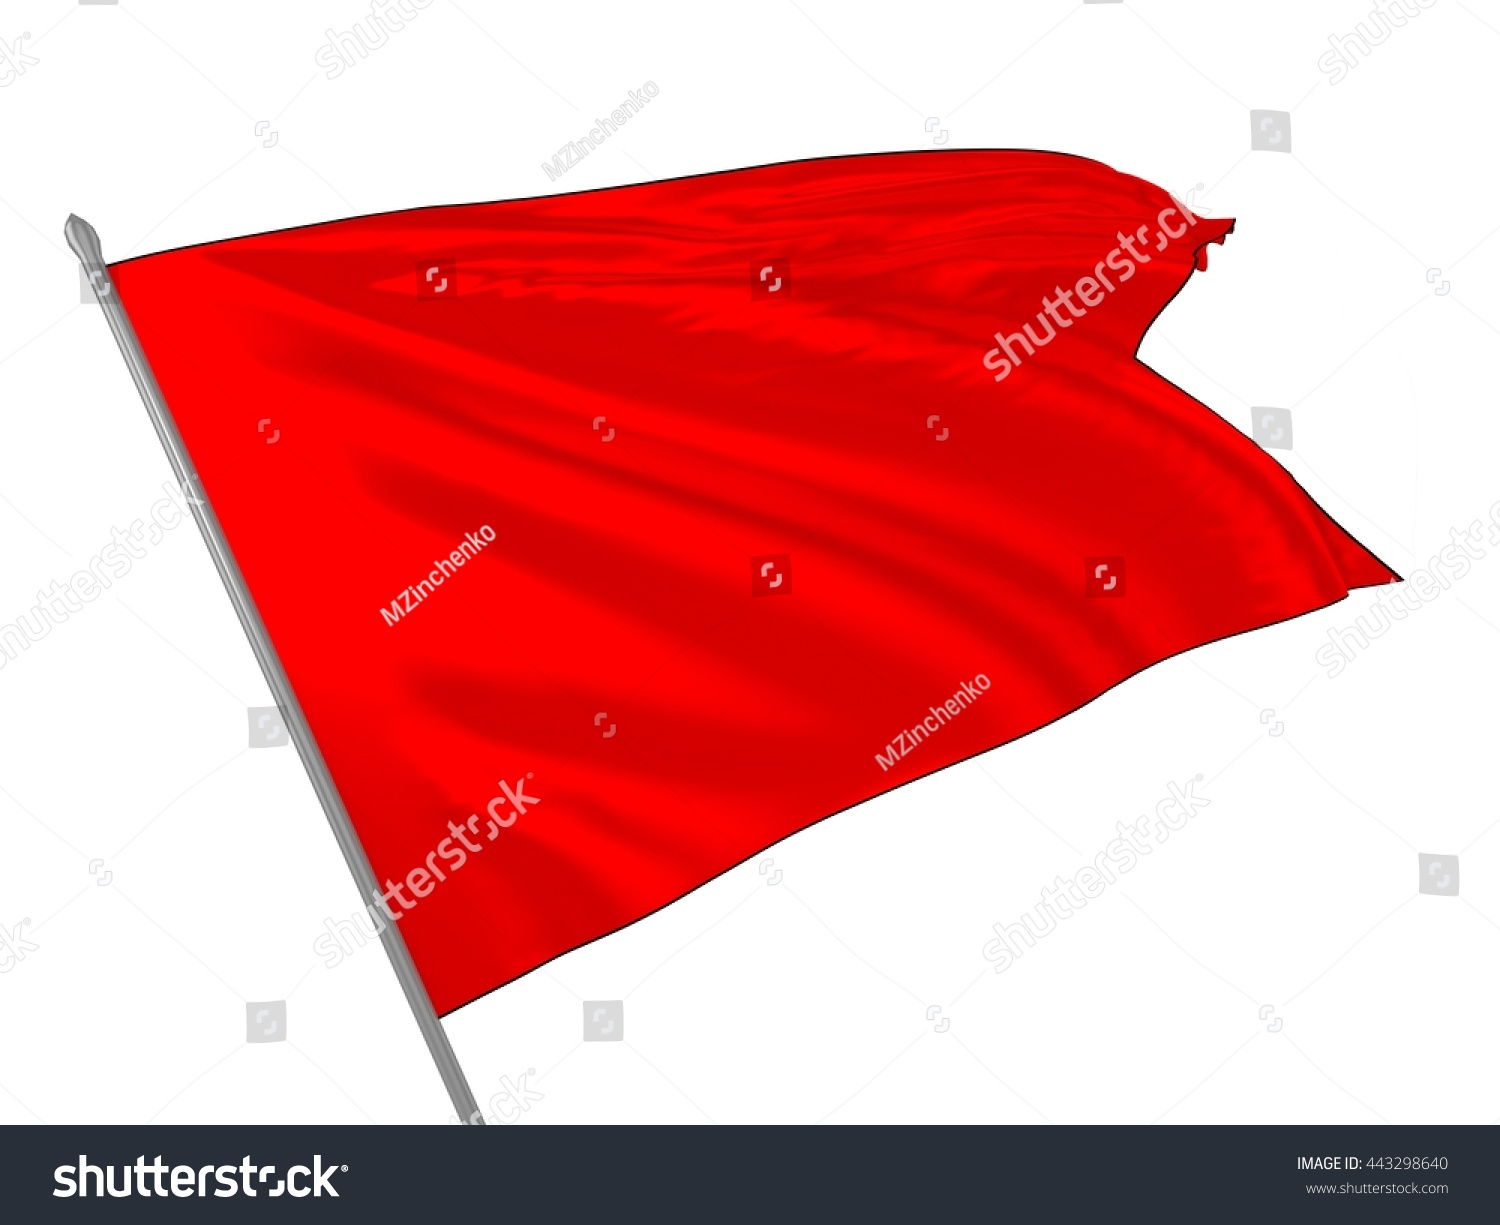 Me meaning of polish flag - 3d Illustration Of International Maritime Signal Flag Meaning B Letter Or Bravo Naval Ics Signal